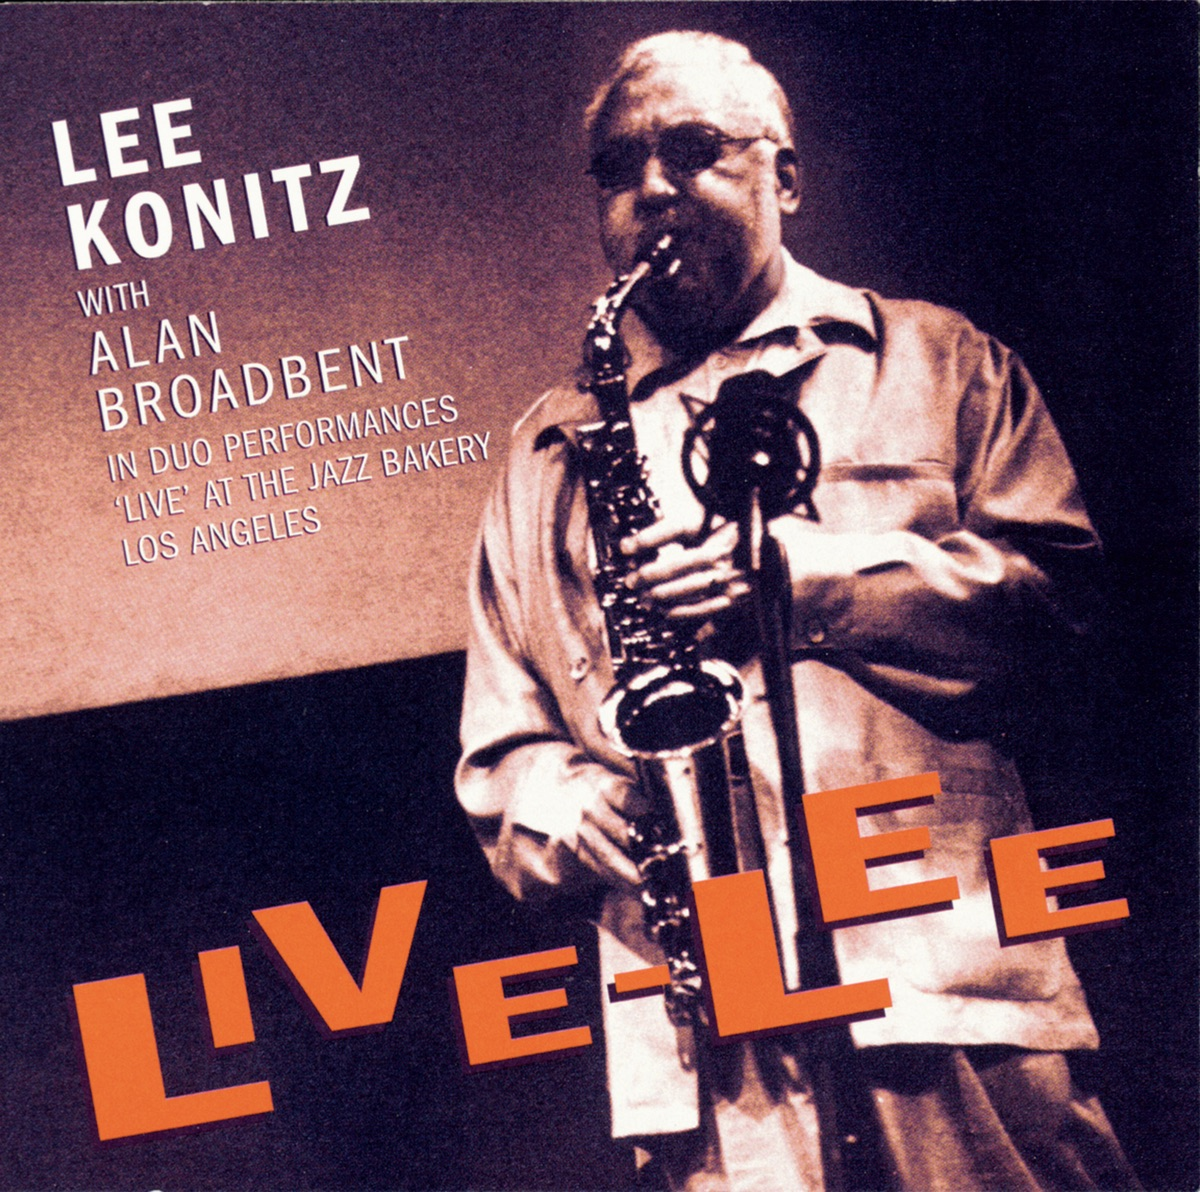 Live-Lee (Live at the Jazz Bakery, Los Angeles)